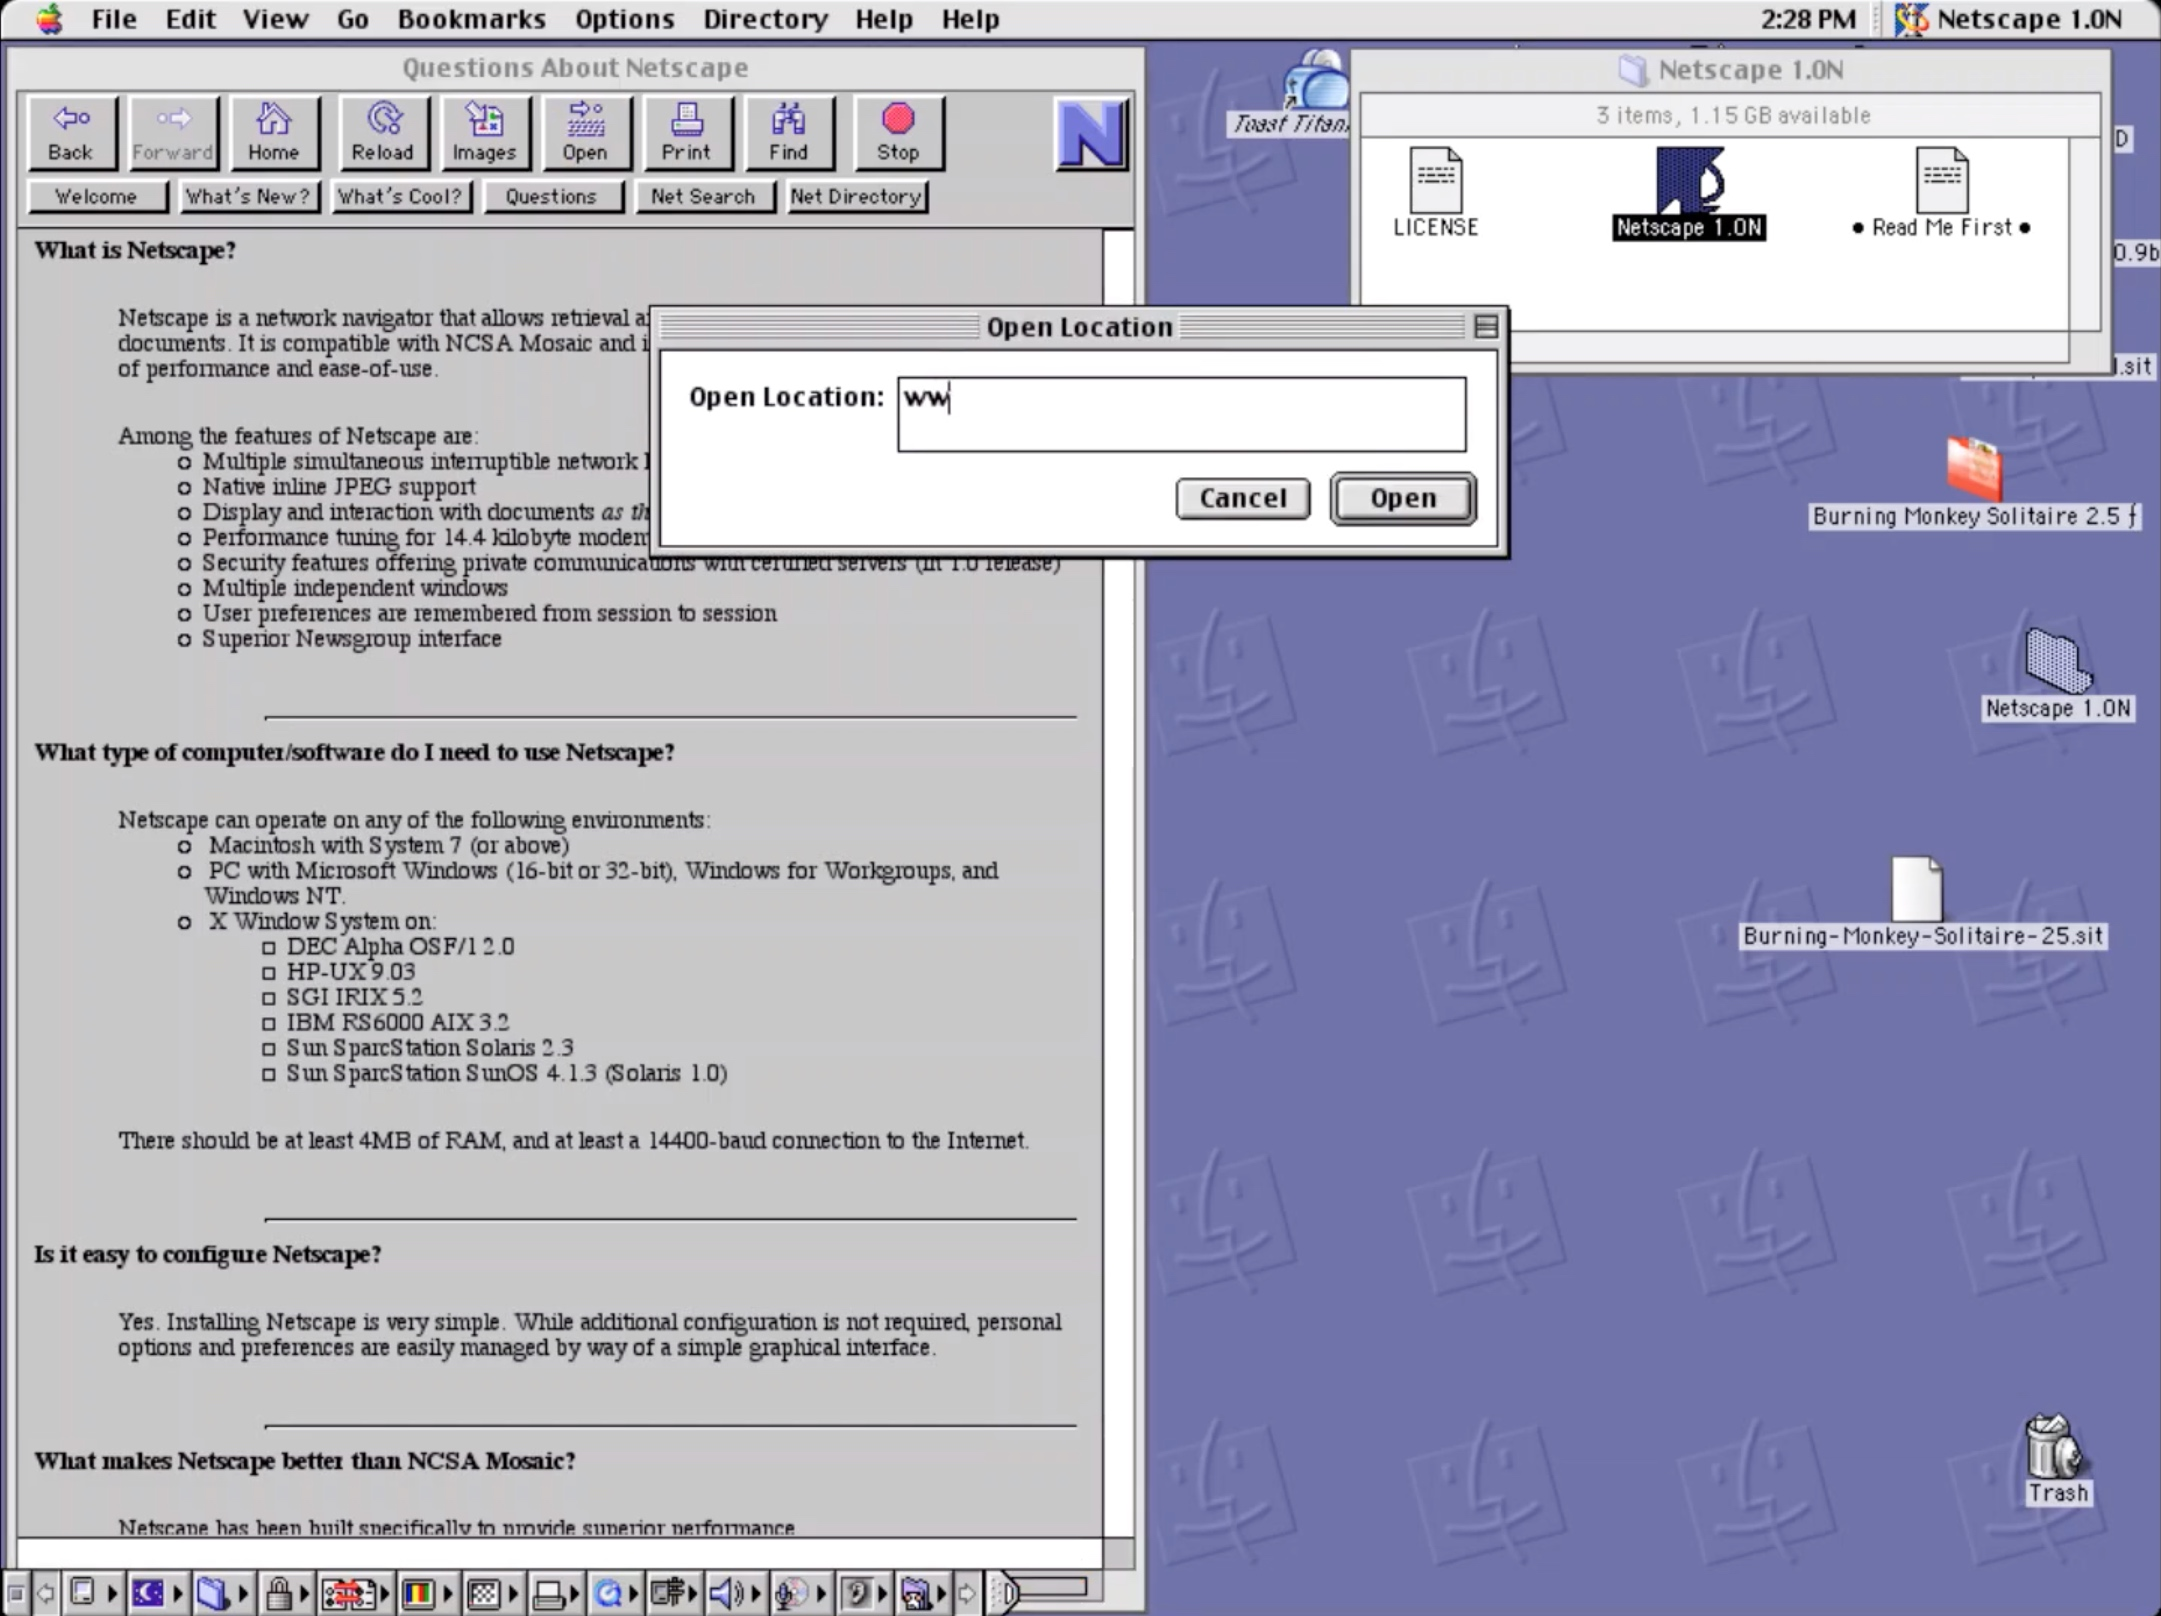 Netscape Navigator 1.0N Browser for Mac Open Location Dialog (1994)